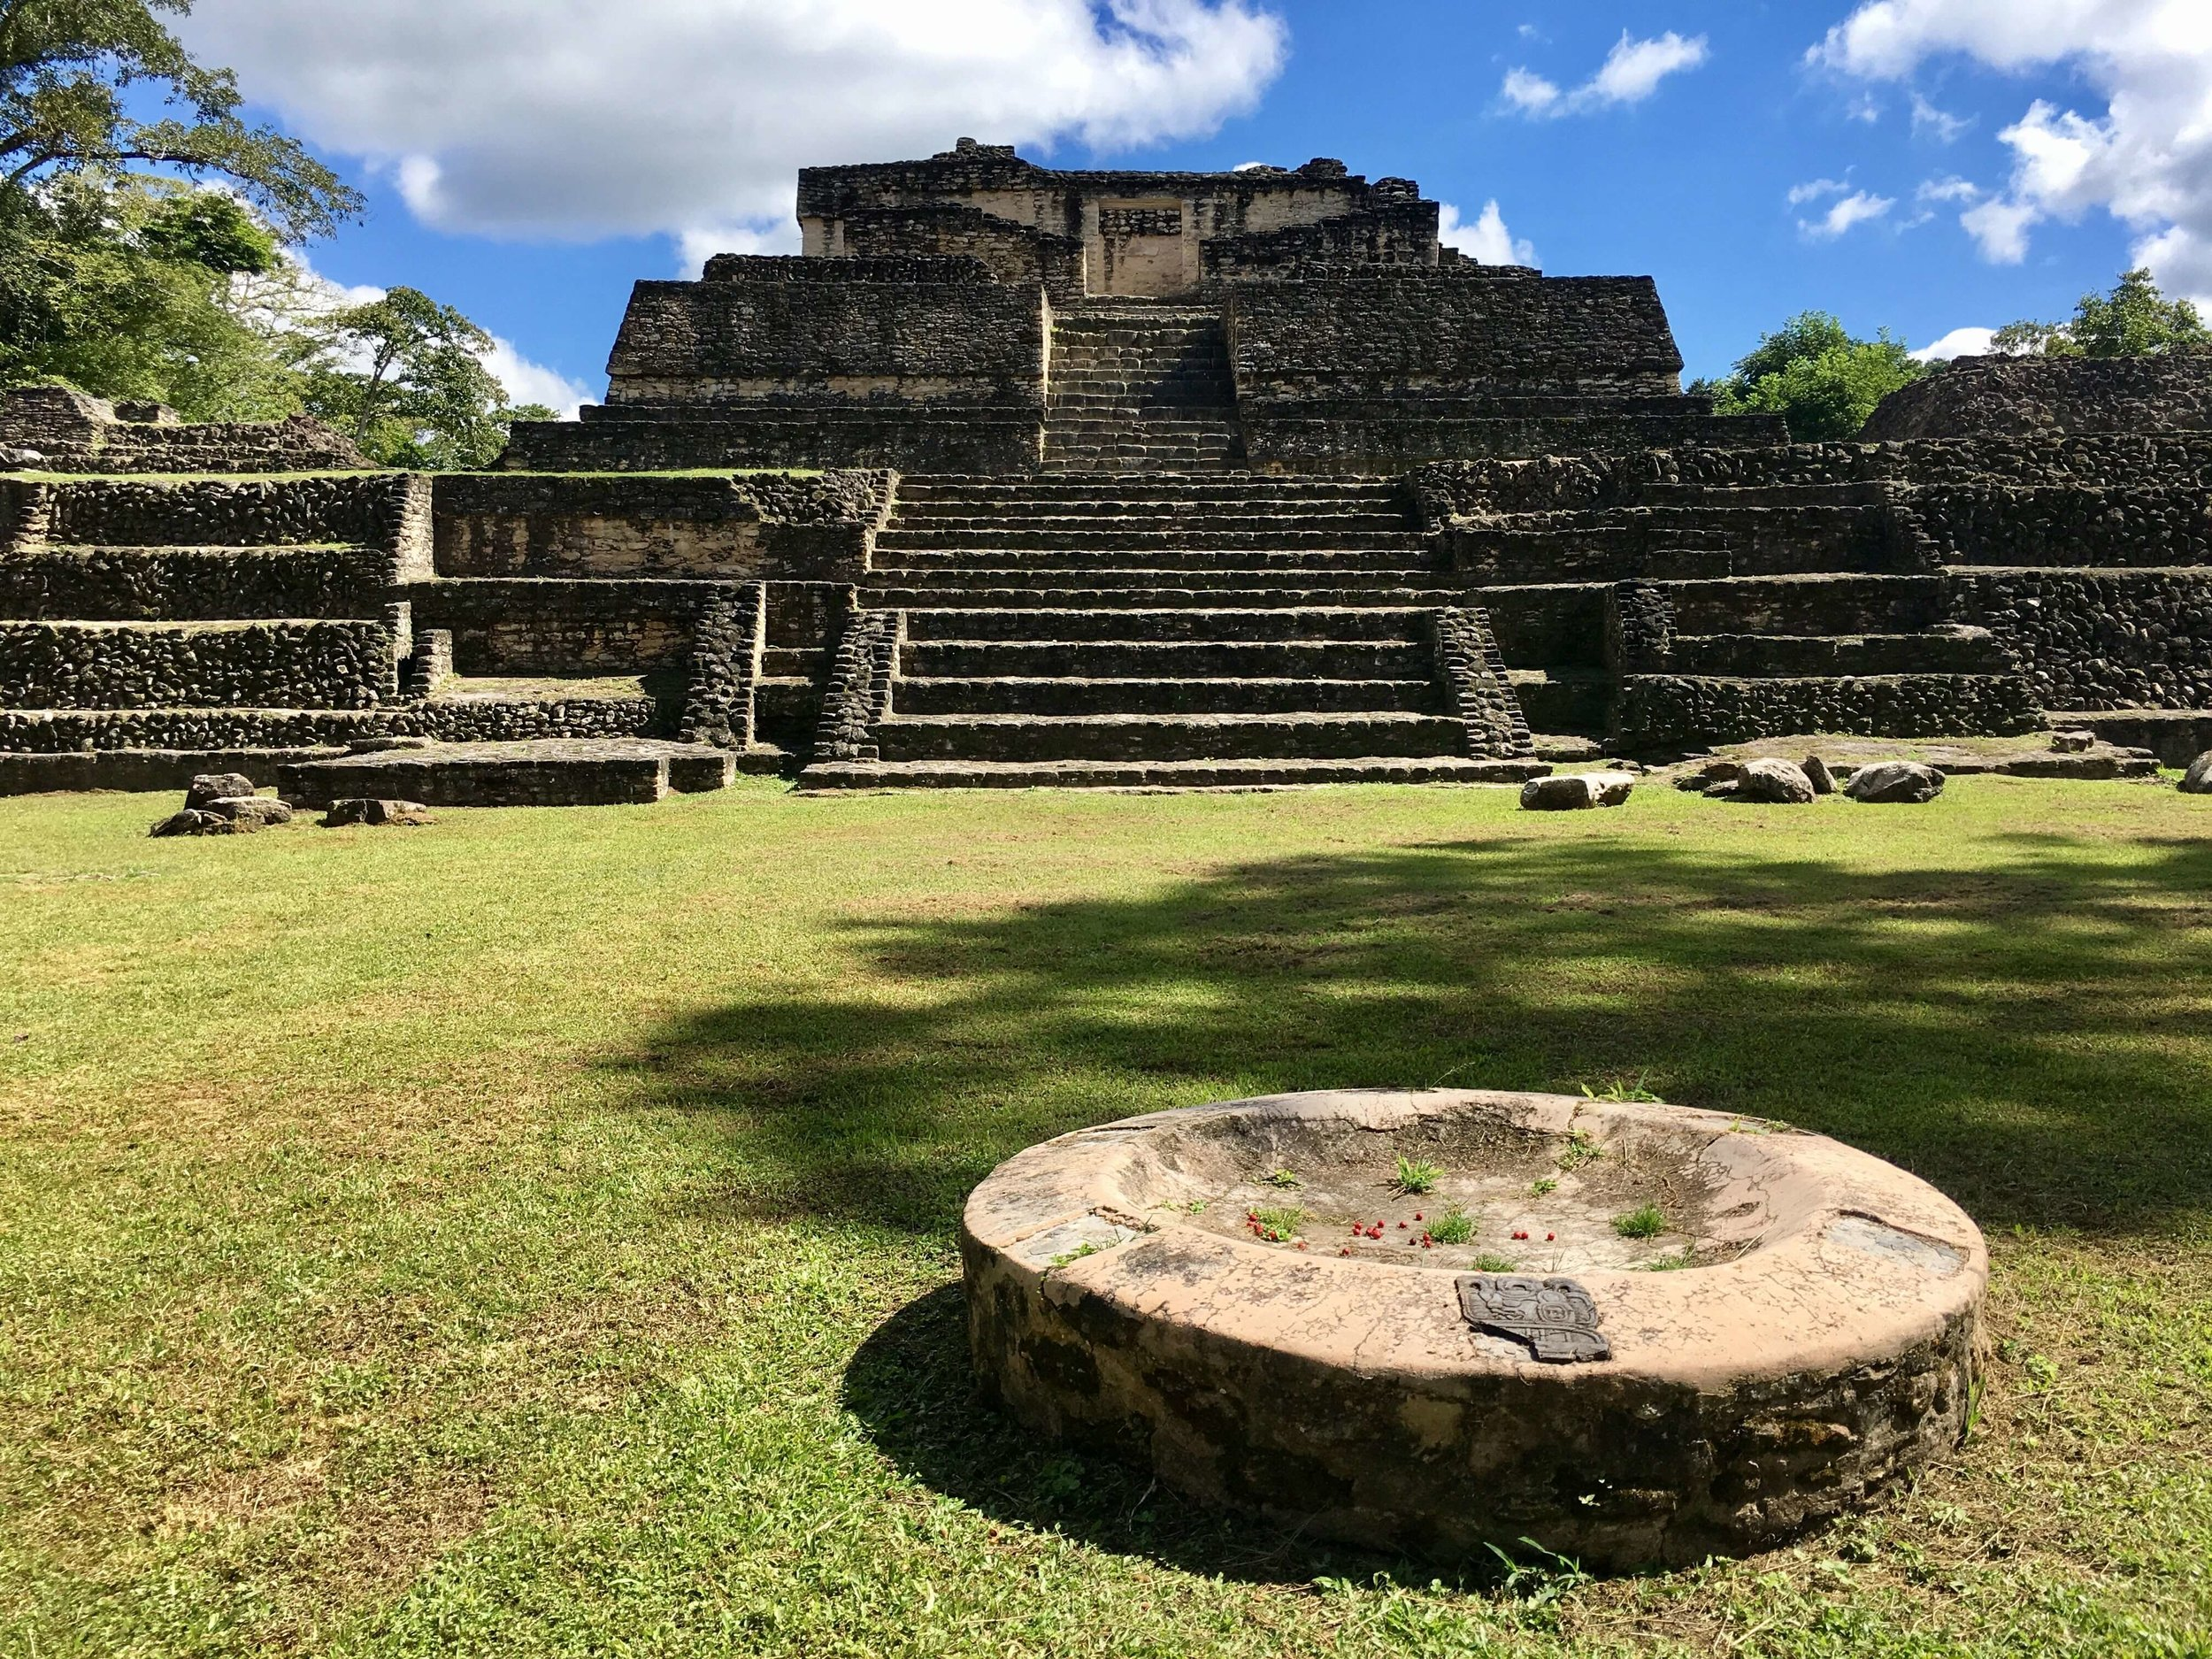 Wandering through Belize's largest Mayan ruin, Caracol. One of the best things to do in Belize.